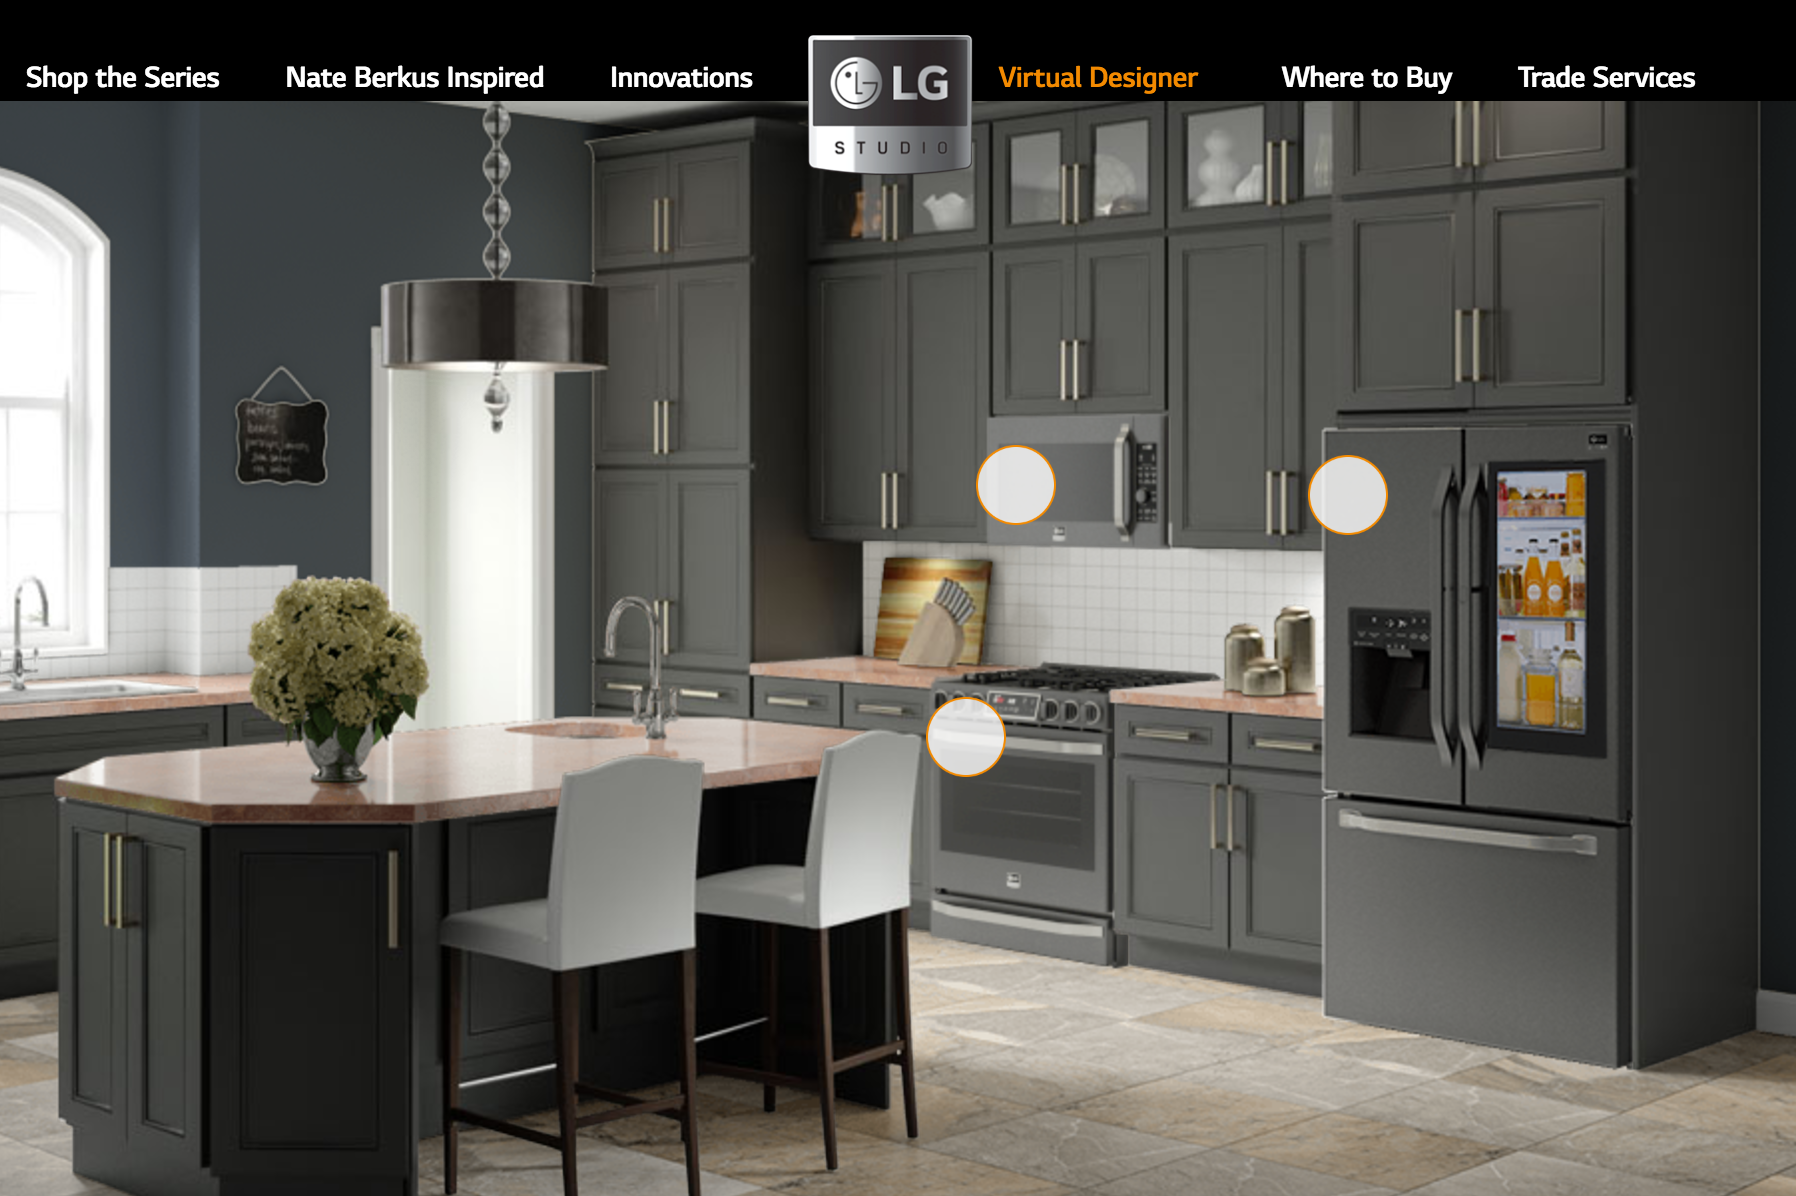 Lg Studio Virtual Designer Tool Kbis Design